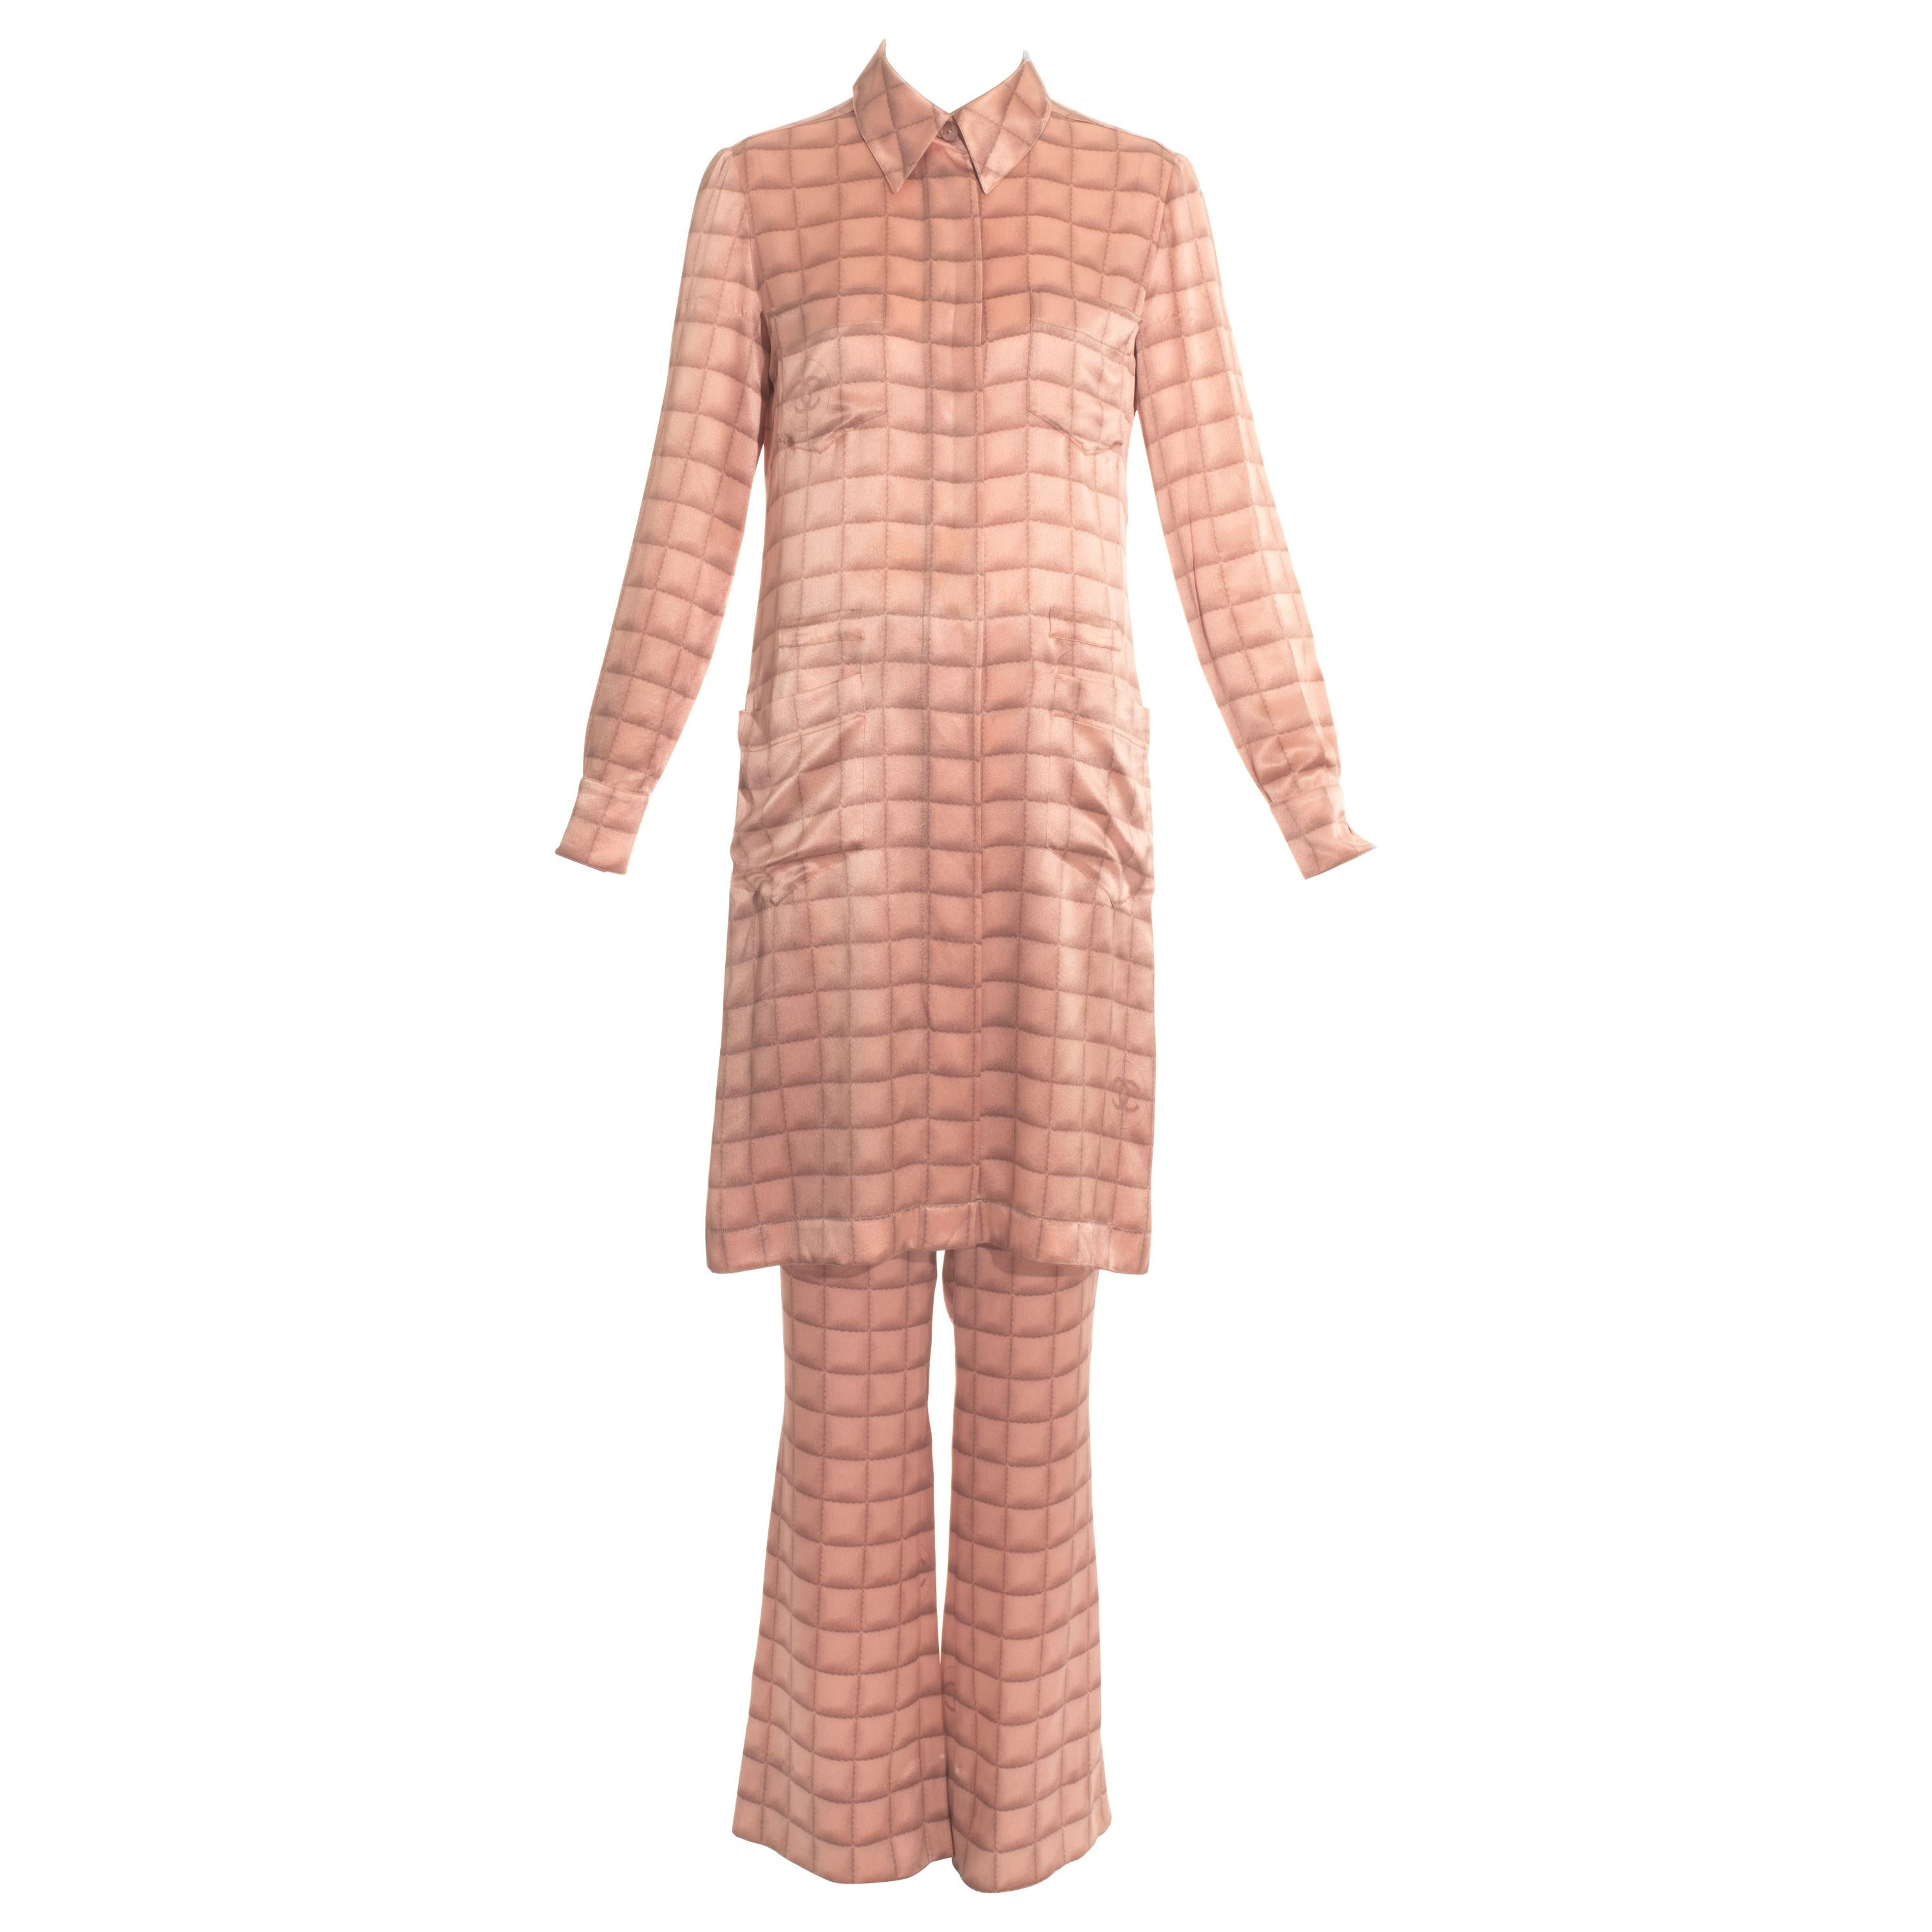 Chanel by Karl Lagerfeld pink silk evening pant suit, fw 2000